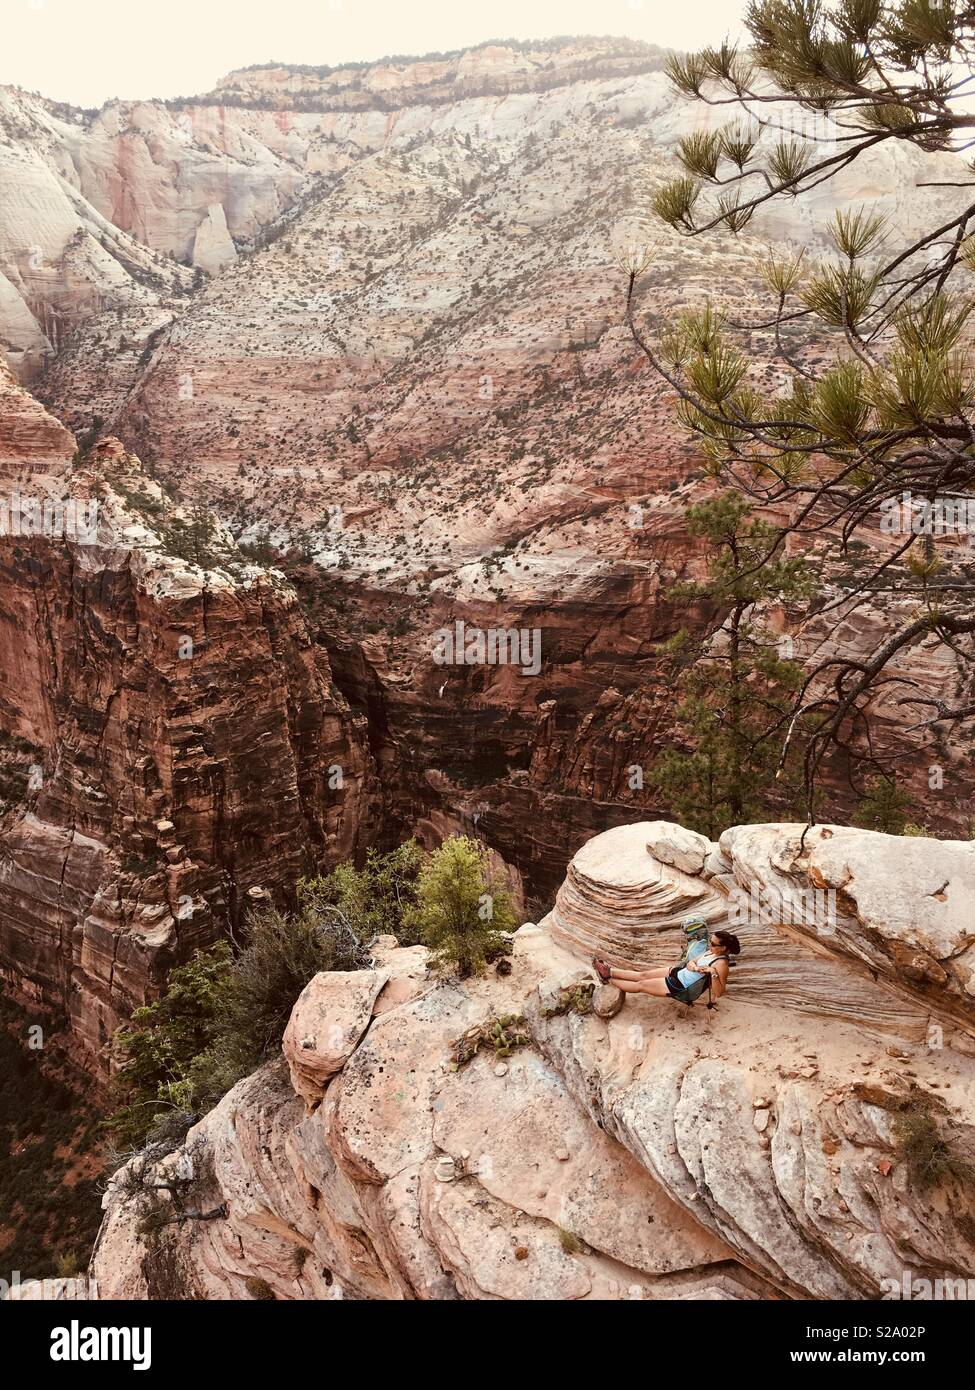 Woman on the edge in Zion National Park, UT - Stock Image